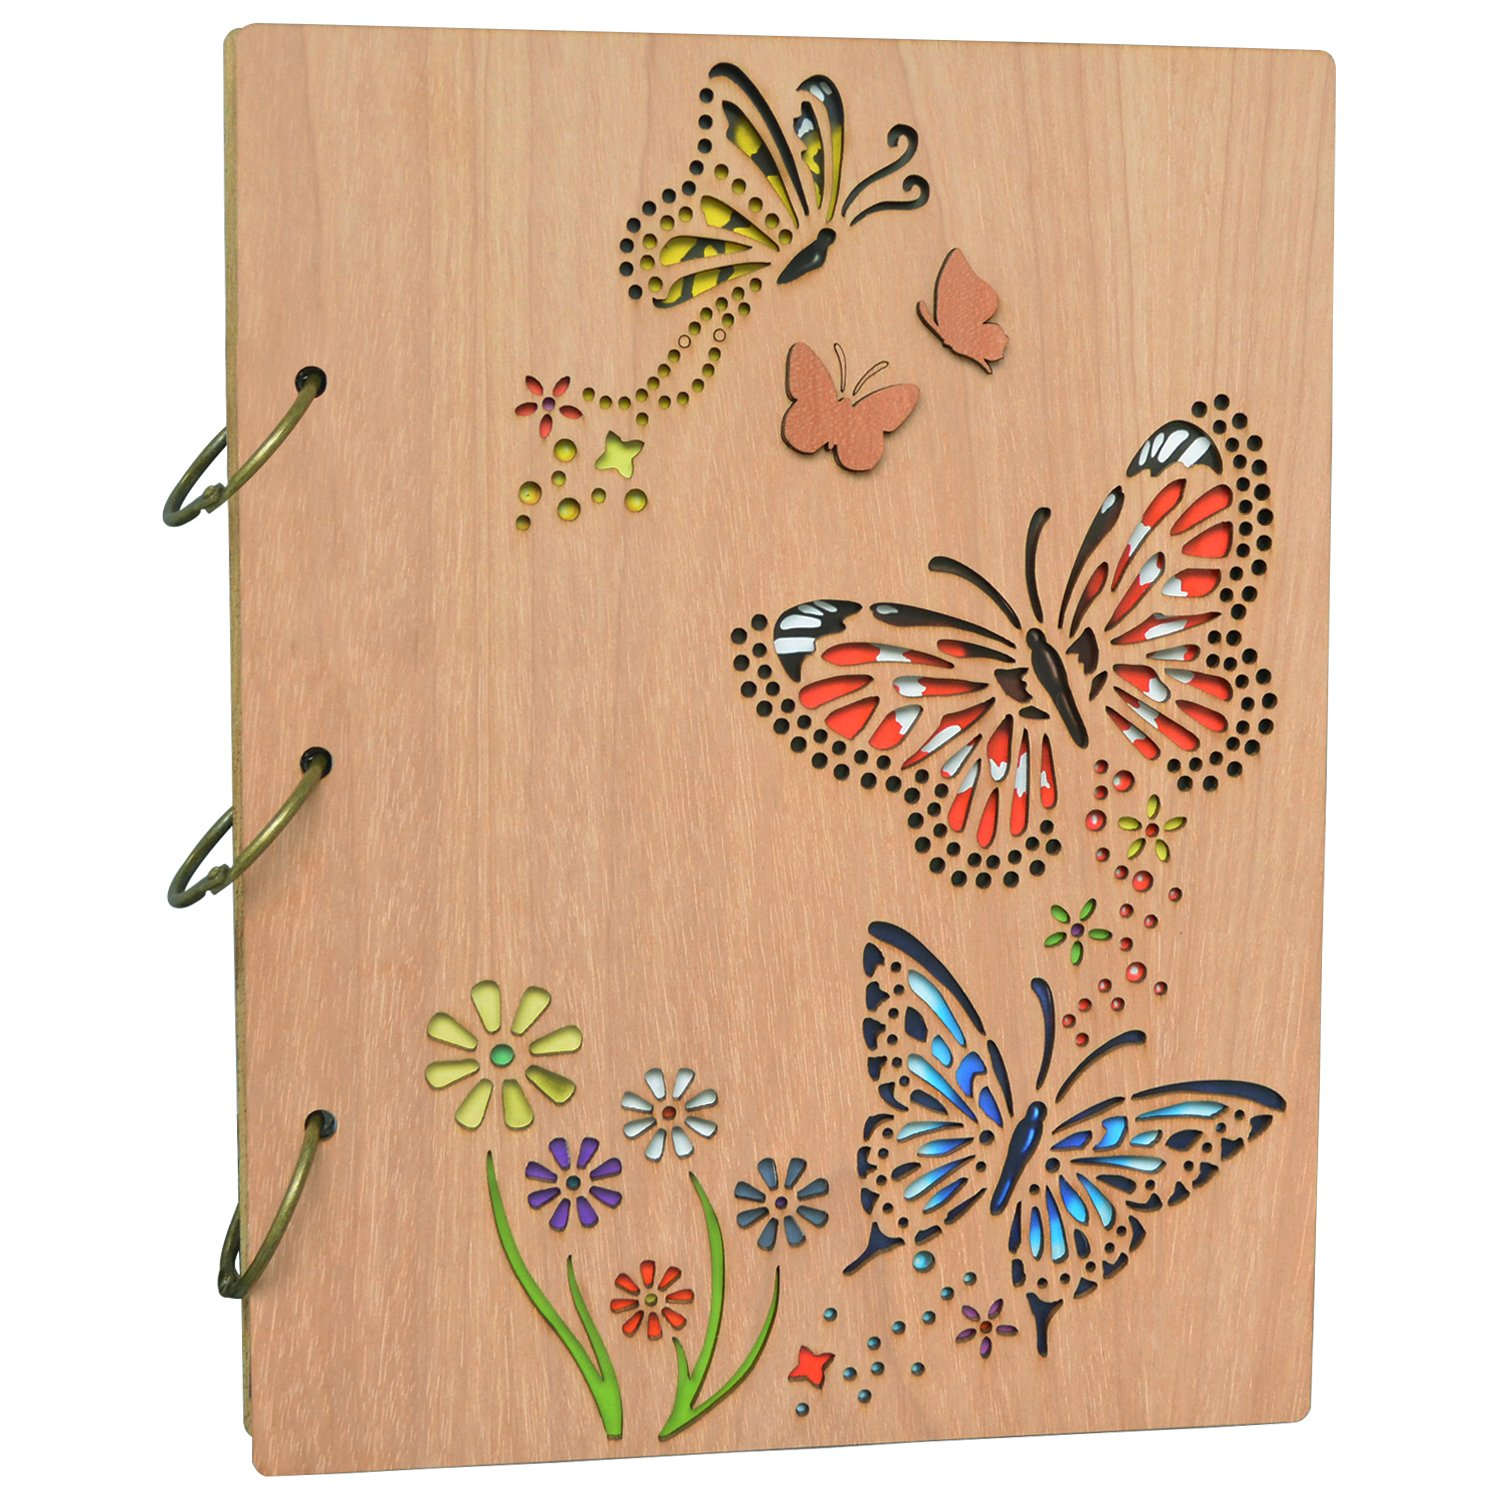 PETAFLOP 5x7 Photo Album Book Butterfly Themed Photo Albums 120 Pockets 3 Ring Binder